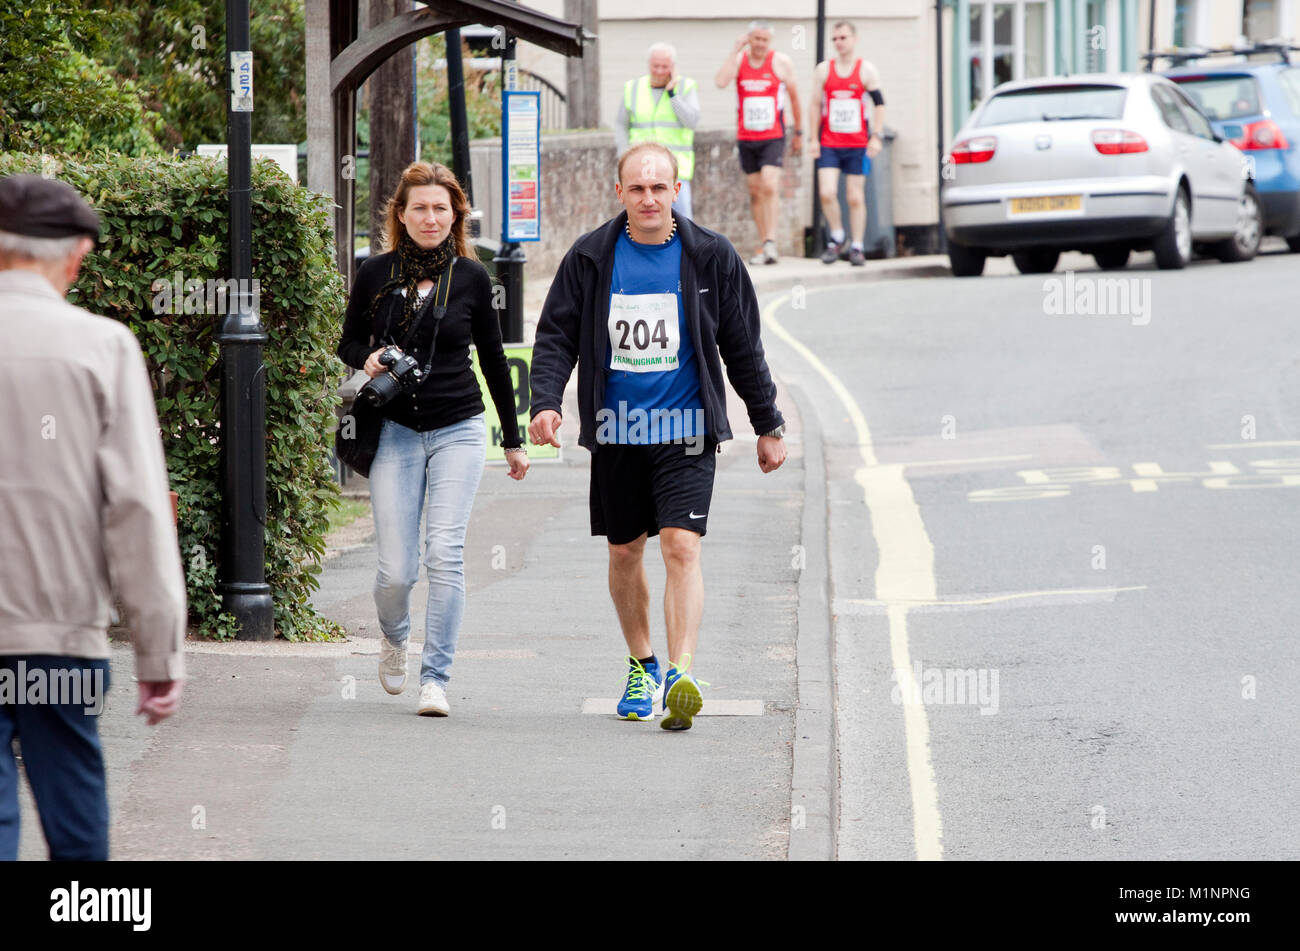 Walking to the start of a road race - Stock Image